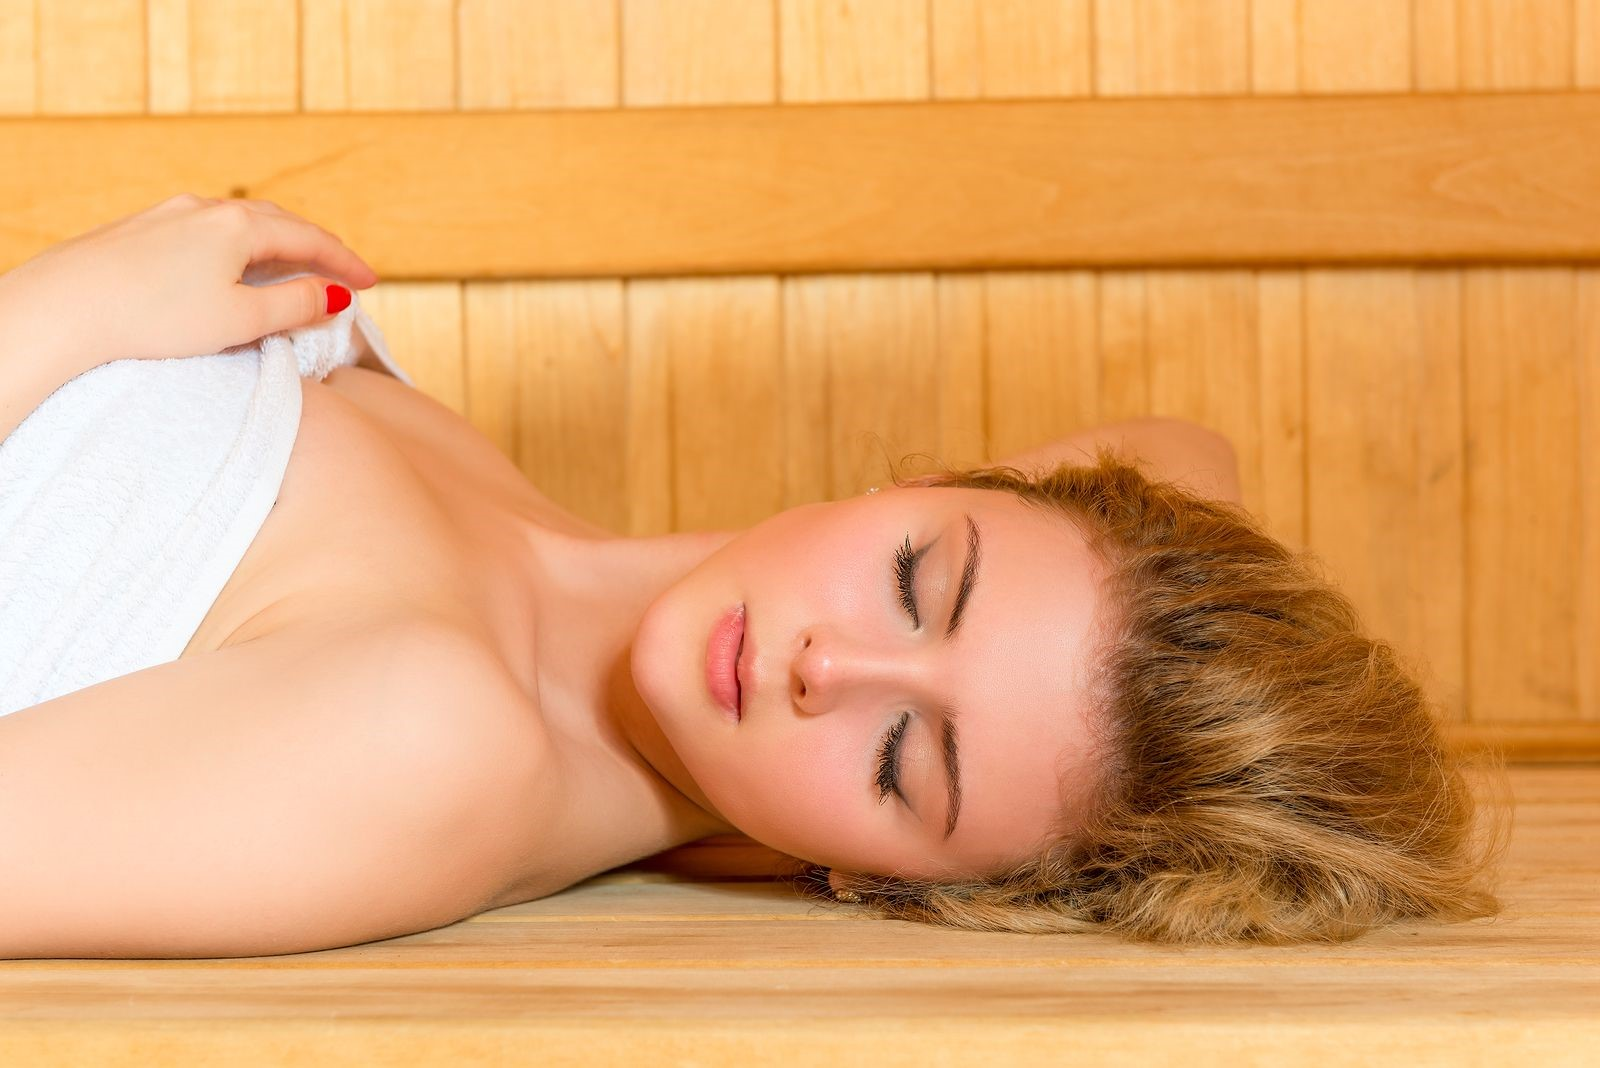 Far-Infrared Sauna with Low EMF: Does Low EMF Mean It Is Safe to Use?